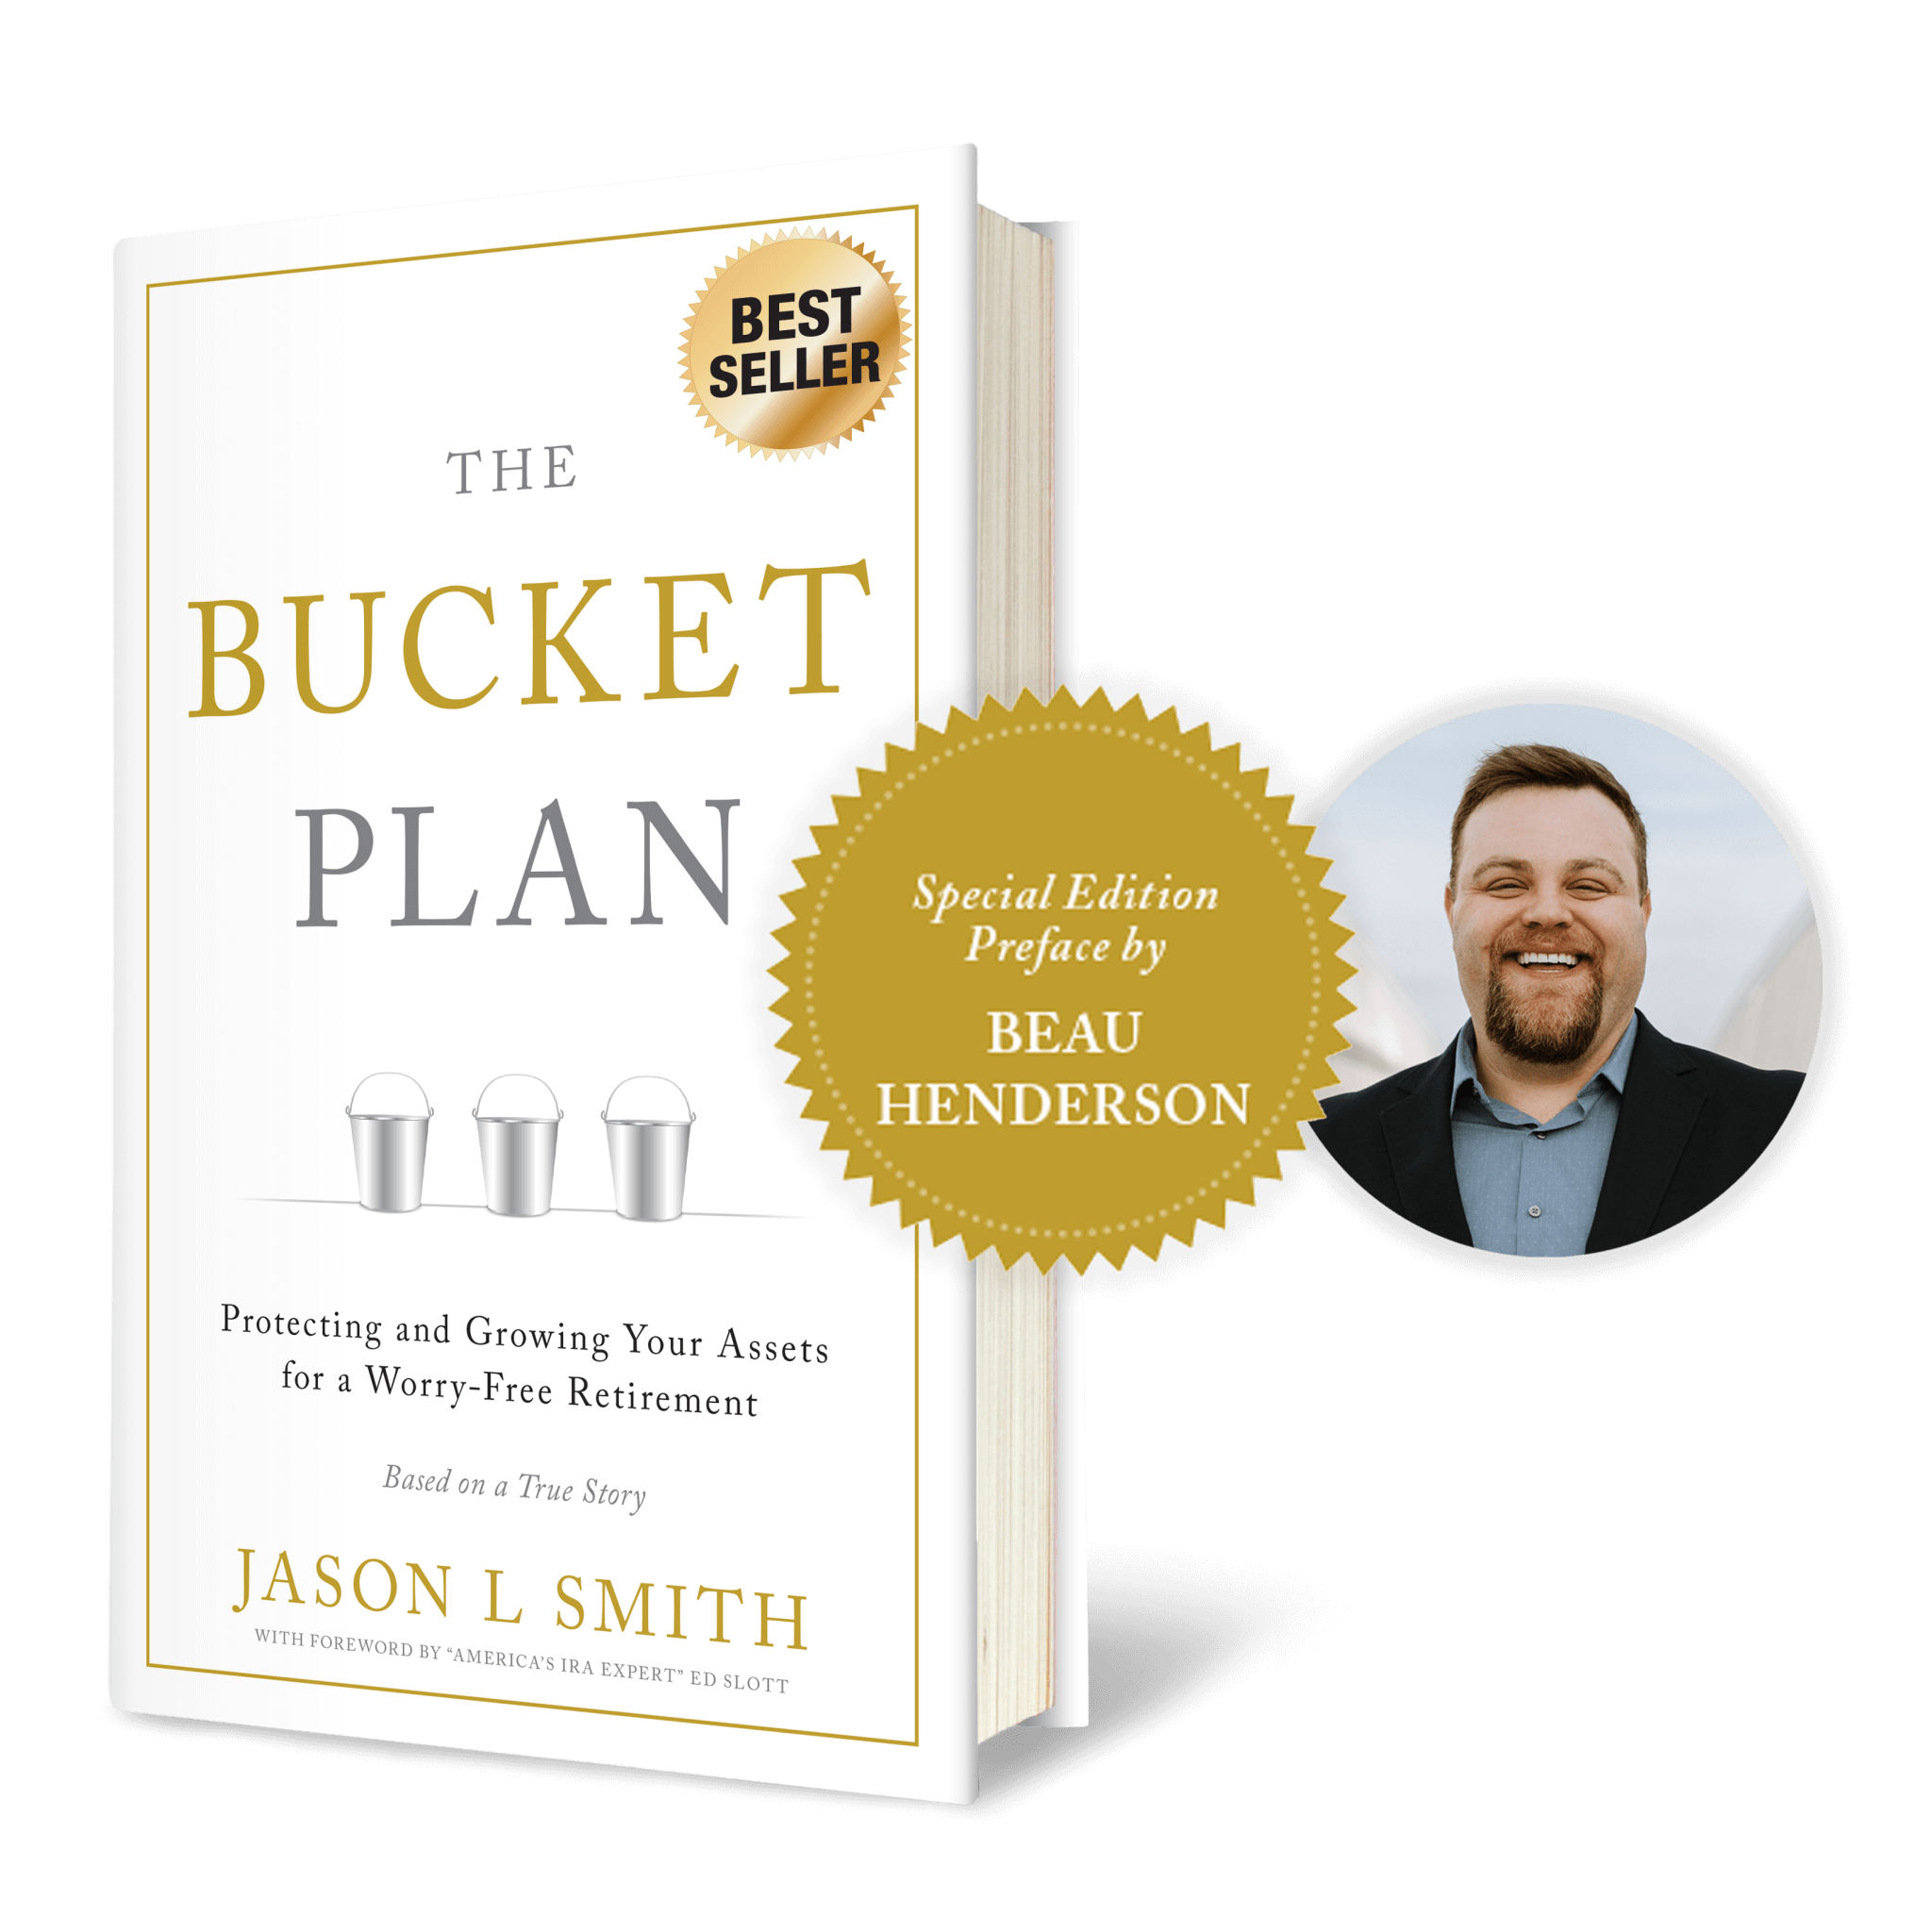 The Bucket Plan book cover